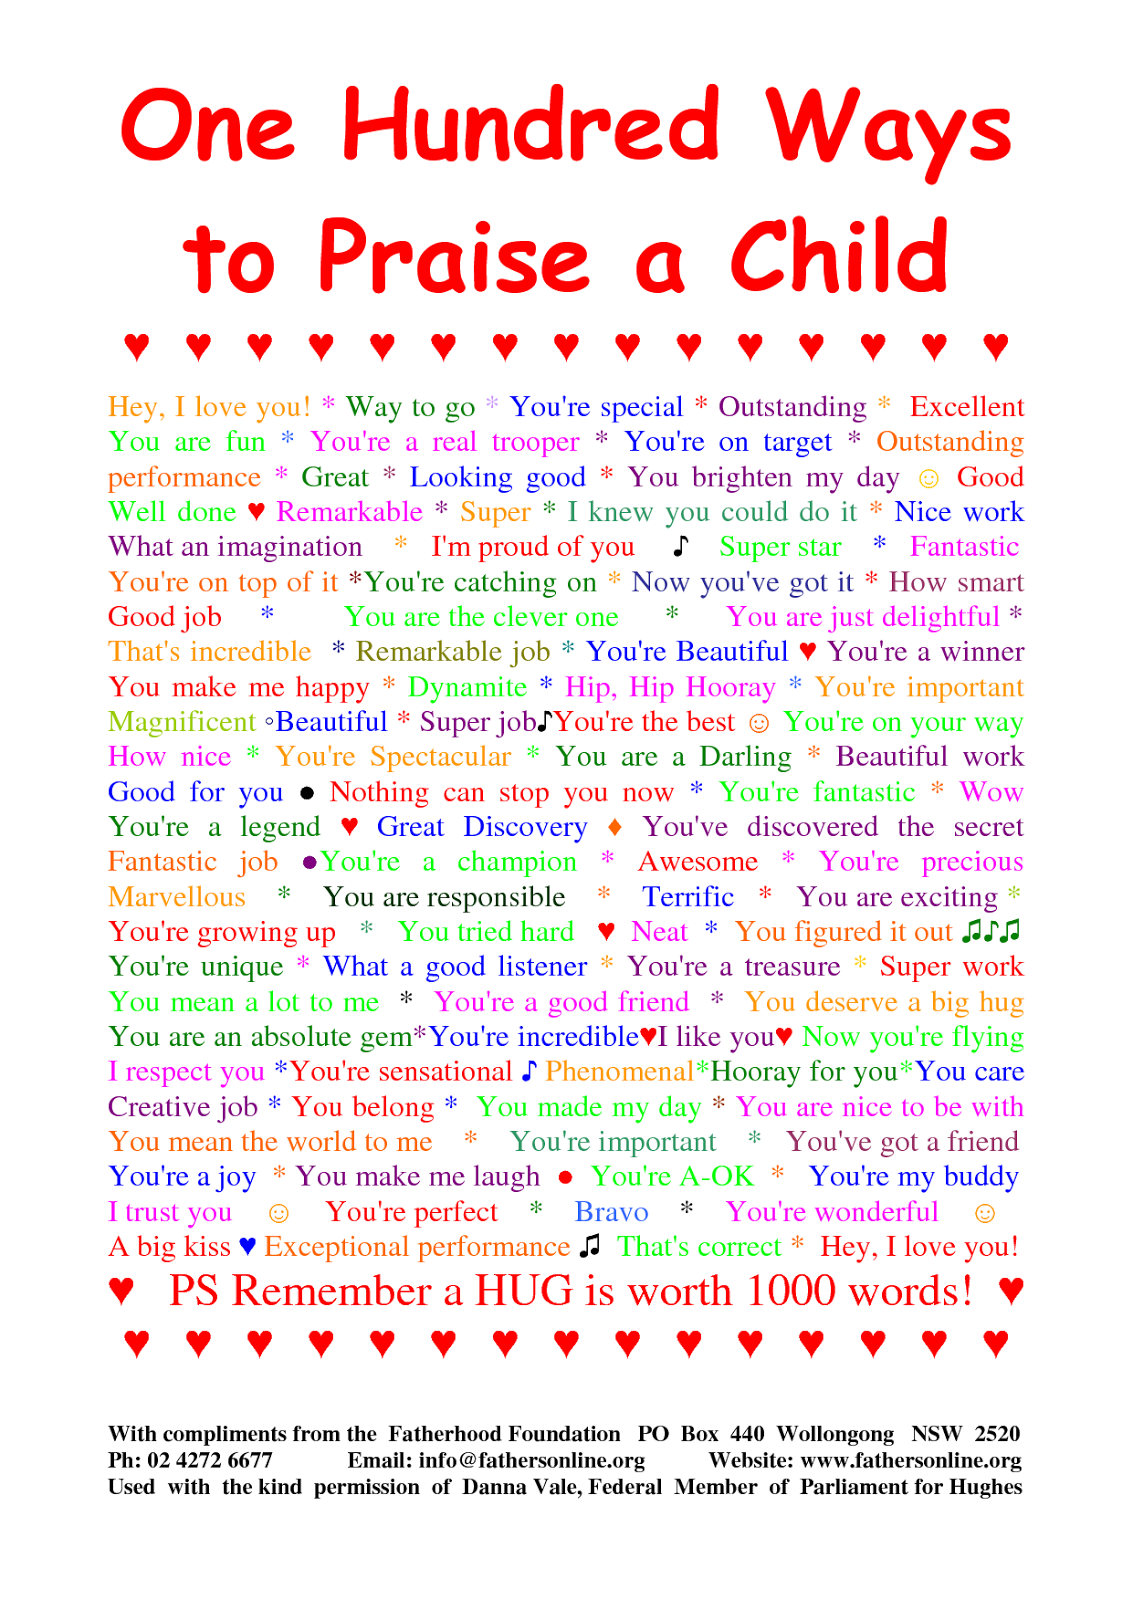 Ago my mil sent us a magnet with 101 ways to praise a child on it and